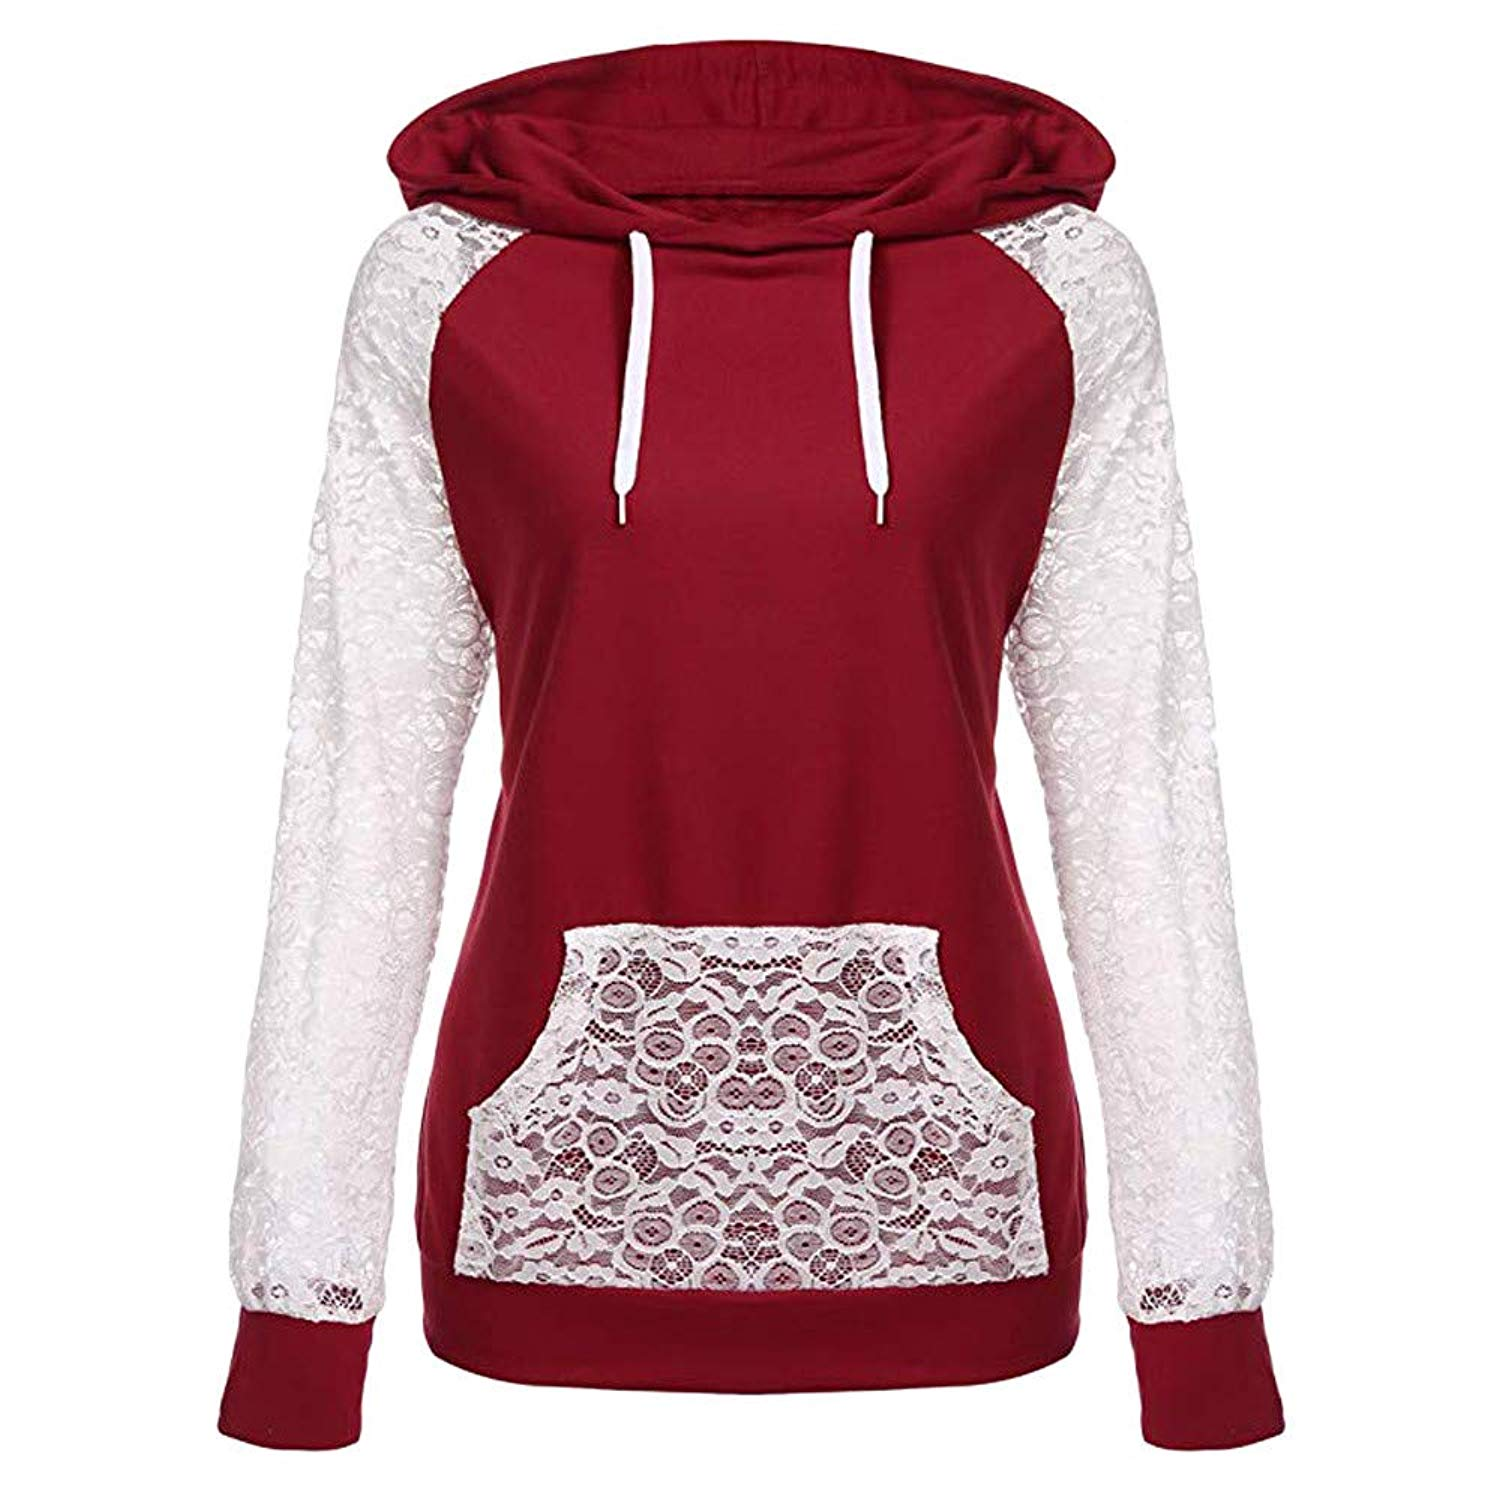 BOLUOYI Blouses for Women Fashion 2018,Womens Lace Patchwork Hooded Sweatshirt Pullover Hoodie Coat Outerwear Tops